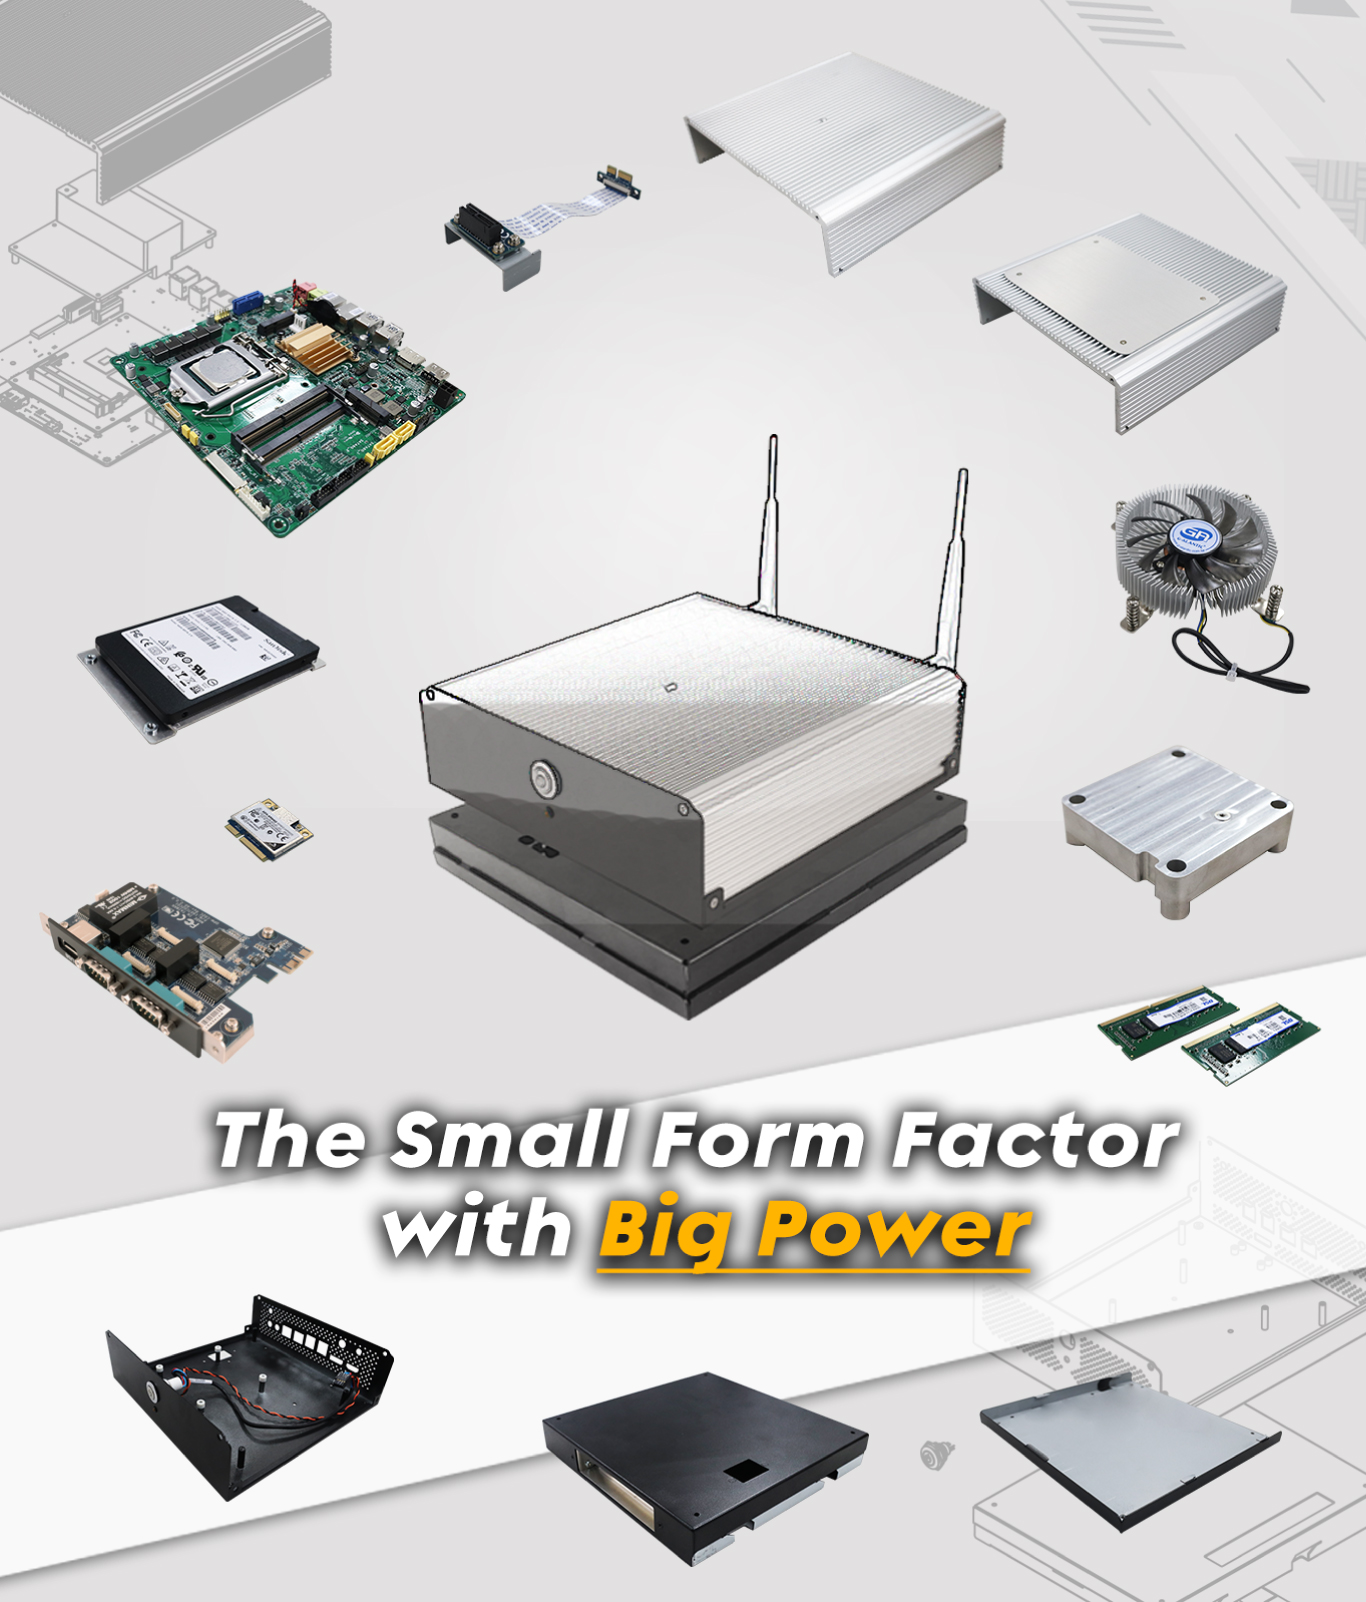 The Small Form Factor with Big Power